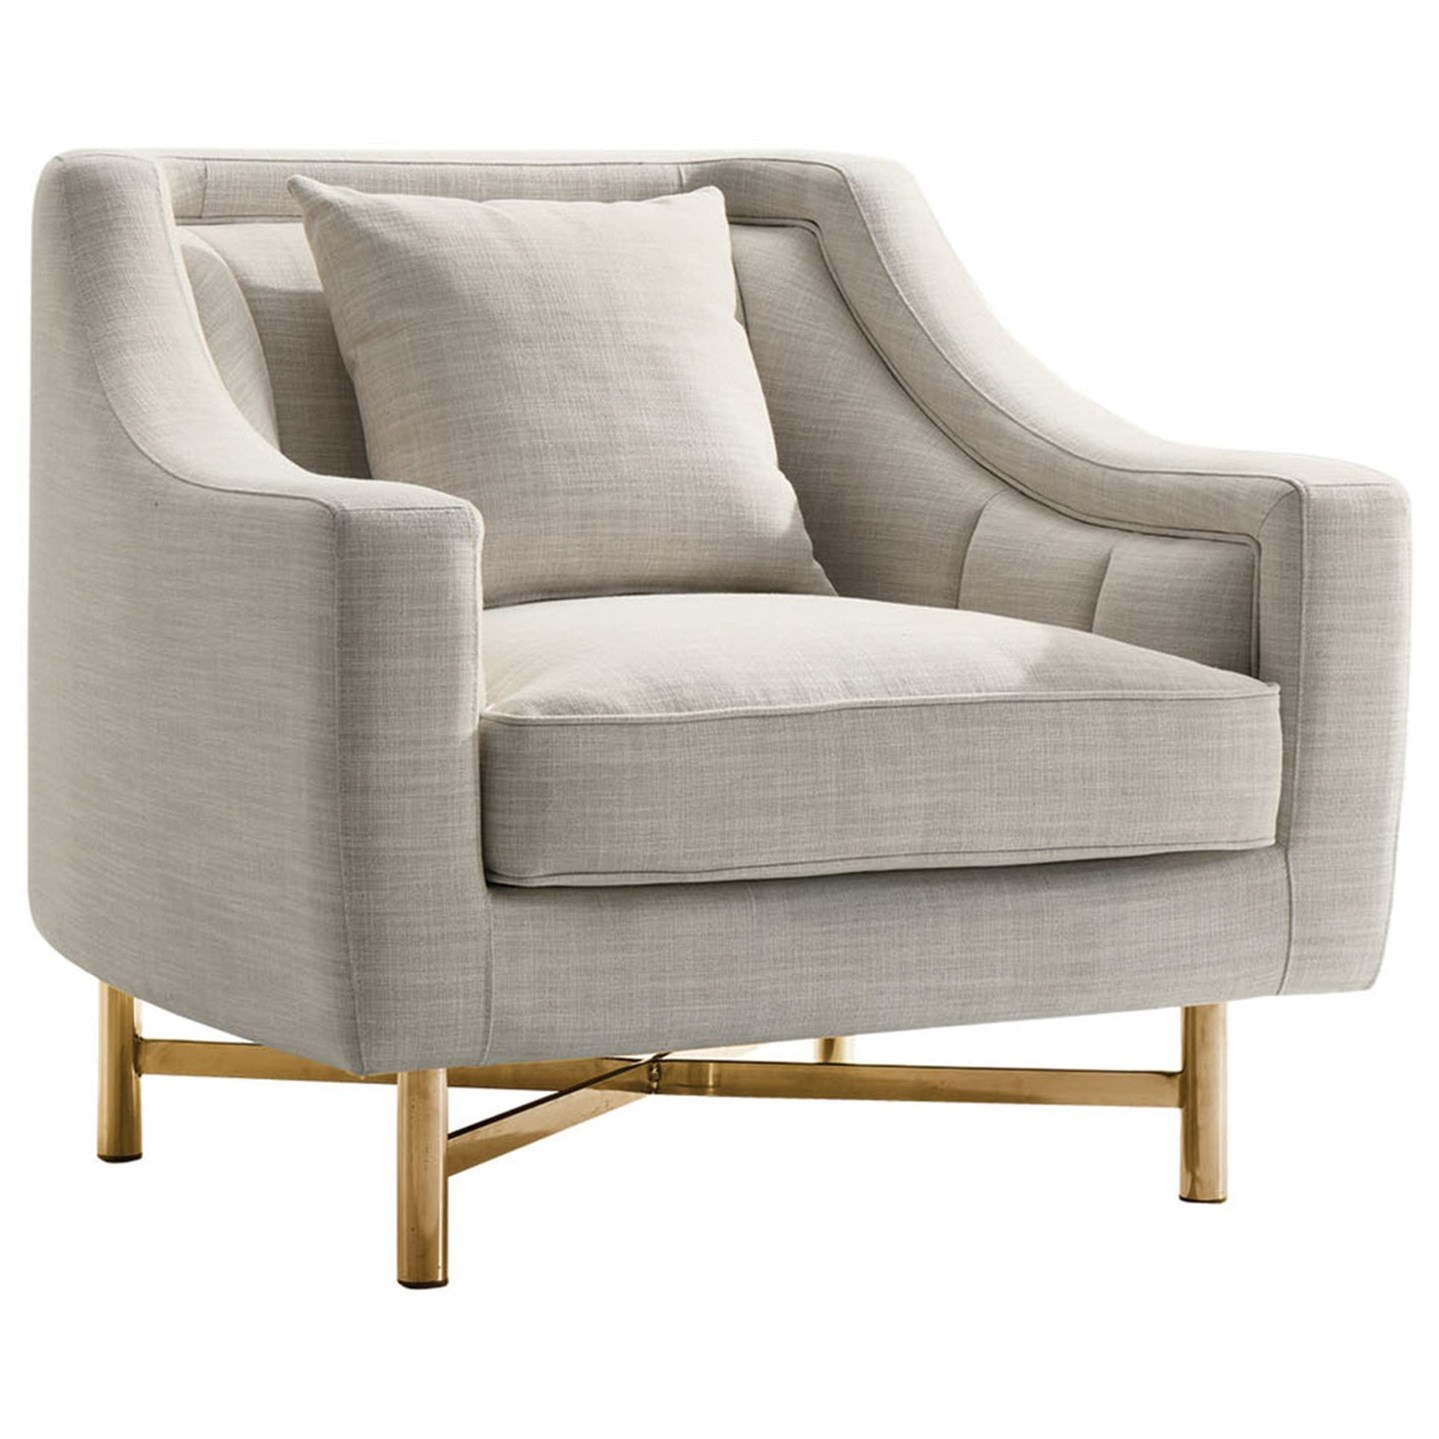 Croft Chair by Diamond Sofa at Red Knot